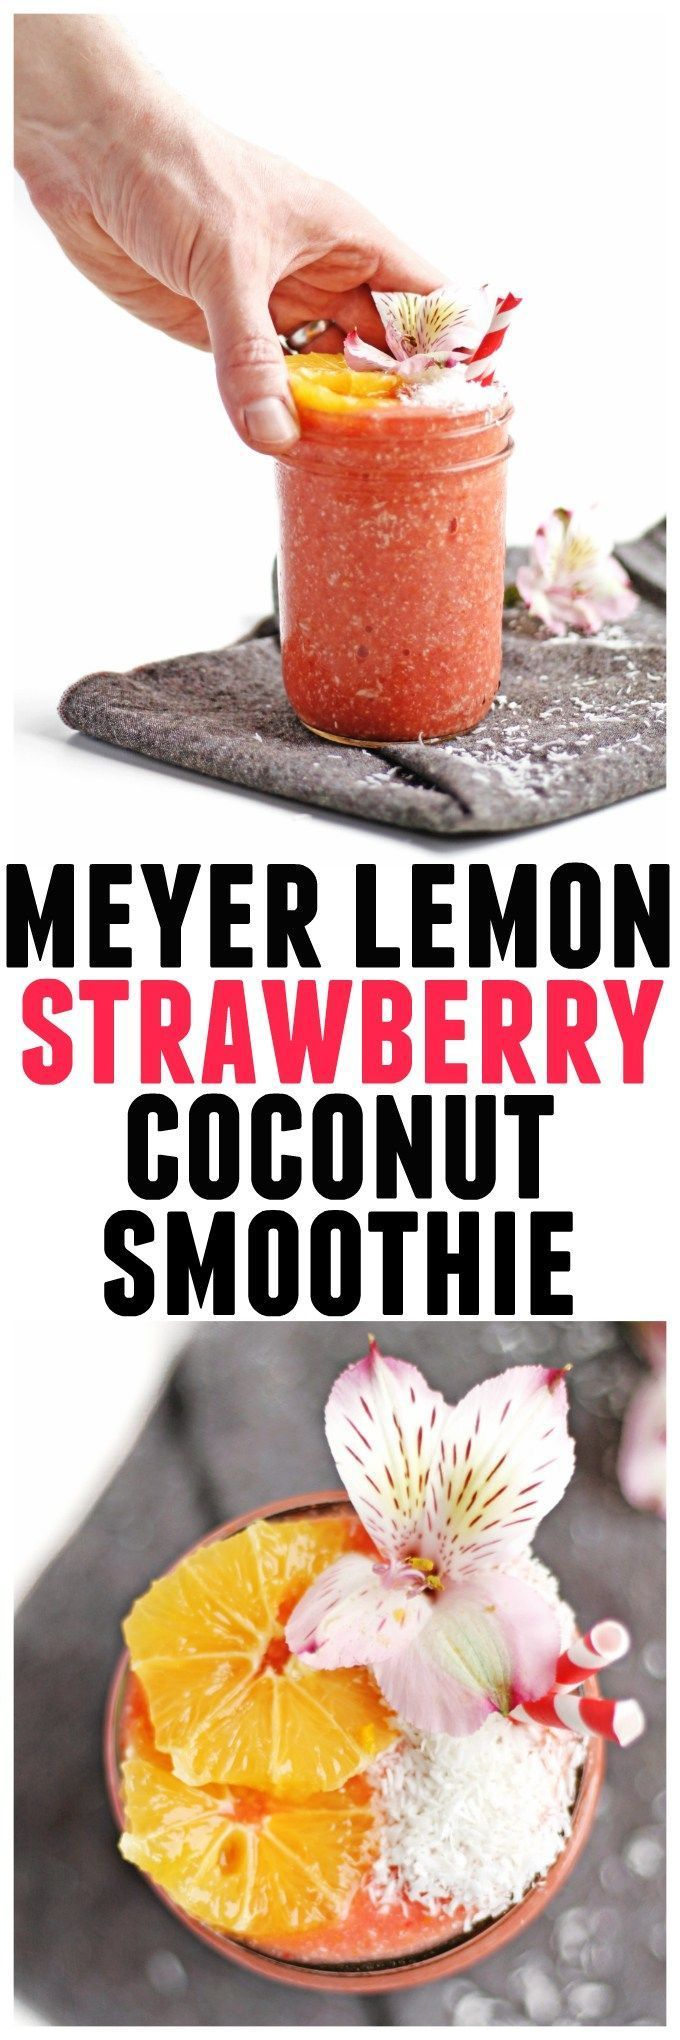 This tropical, refreshing meyer lemon strawberry smoothie with coconut includes an entire meyer lemon. A no waste recipe! Vegan, gluten free, clean eating, sugar free, dairy free, amazing. // Rhubarbarians #vegansmoothie